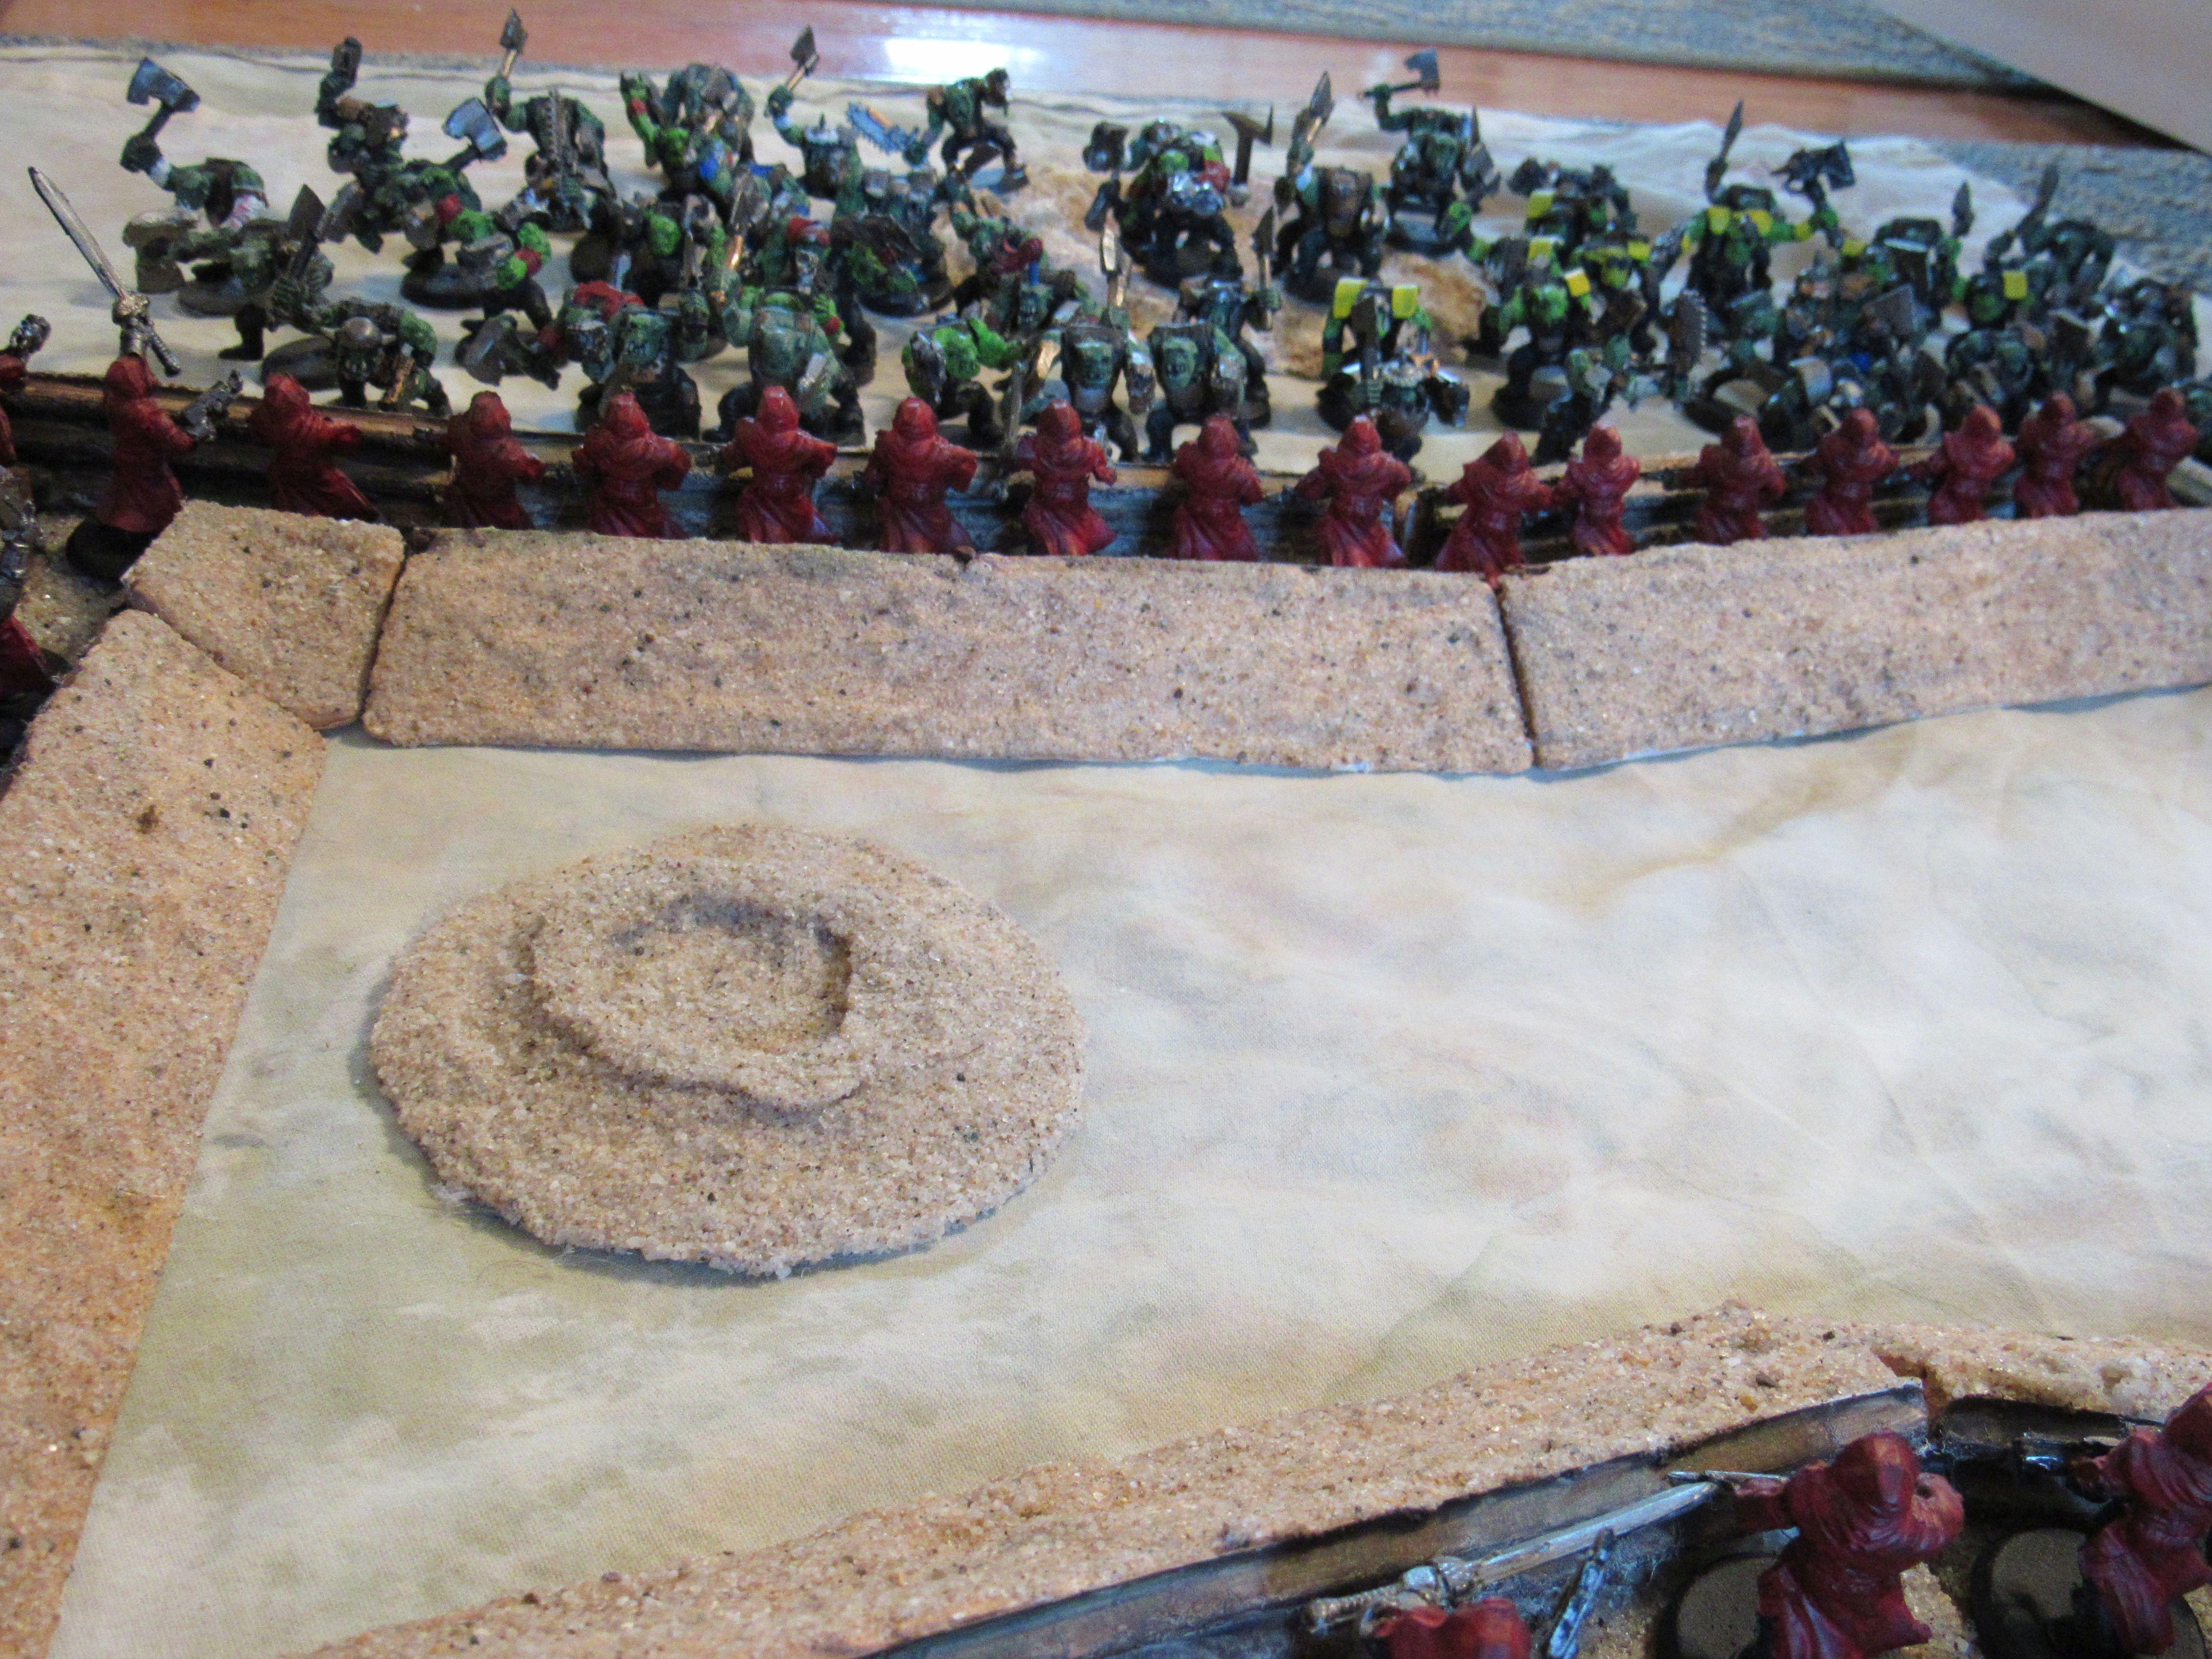 Warhammer 40,000, trenches